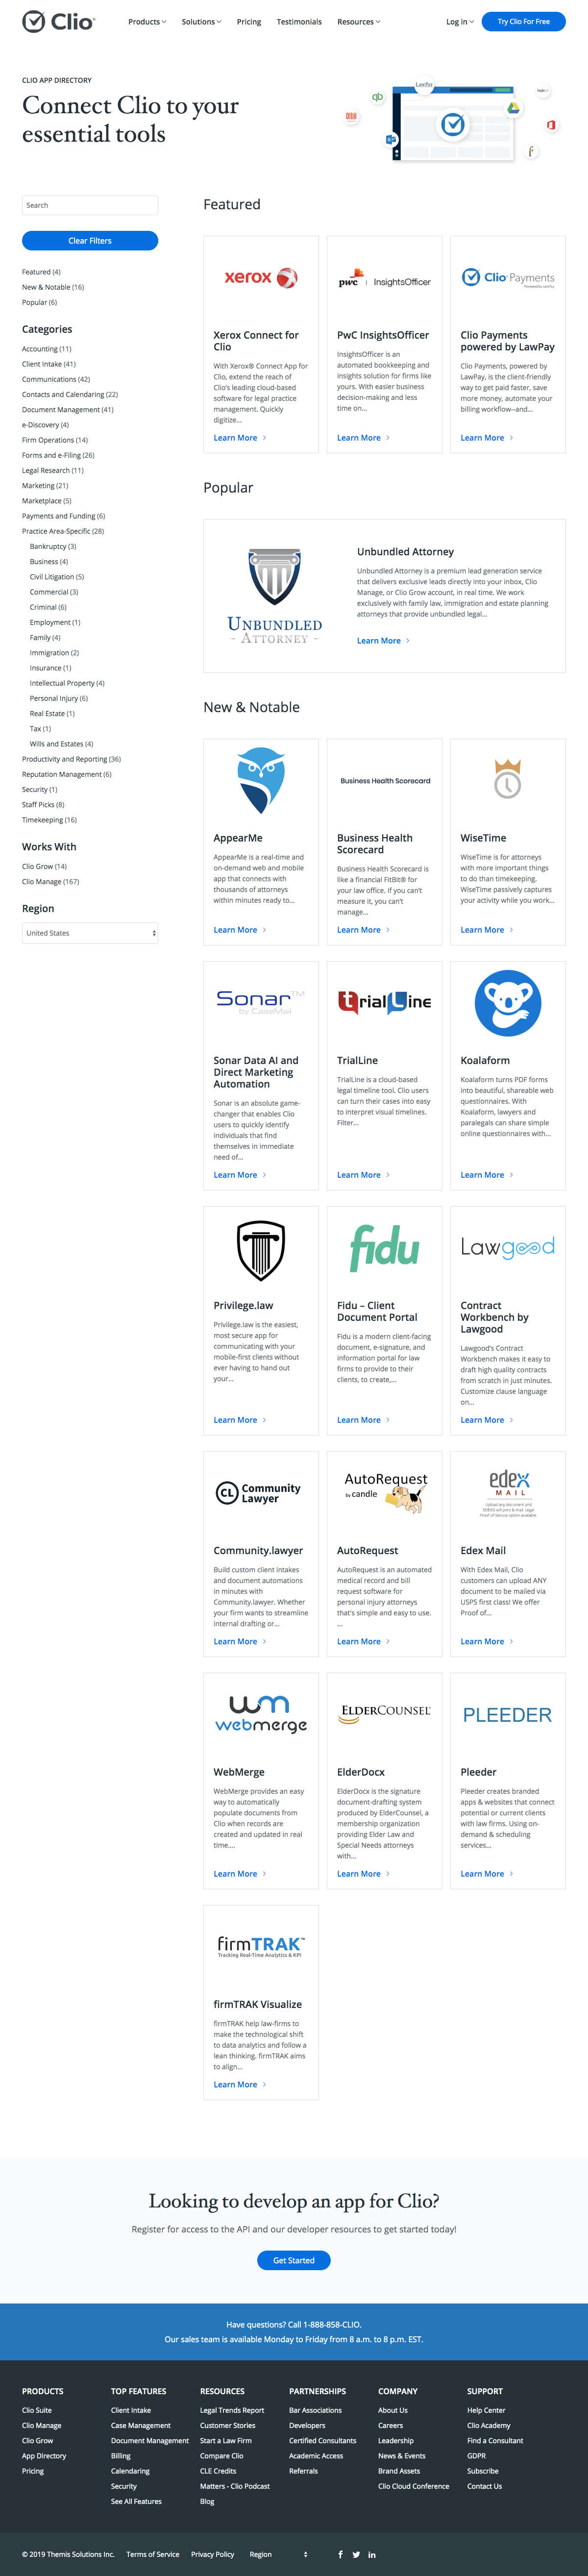 Clio - Integrations page 1